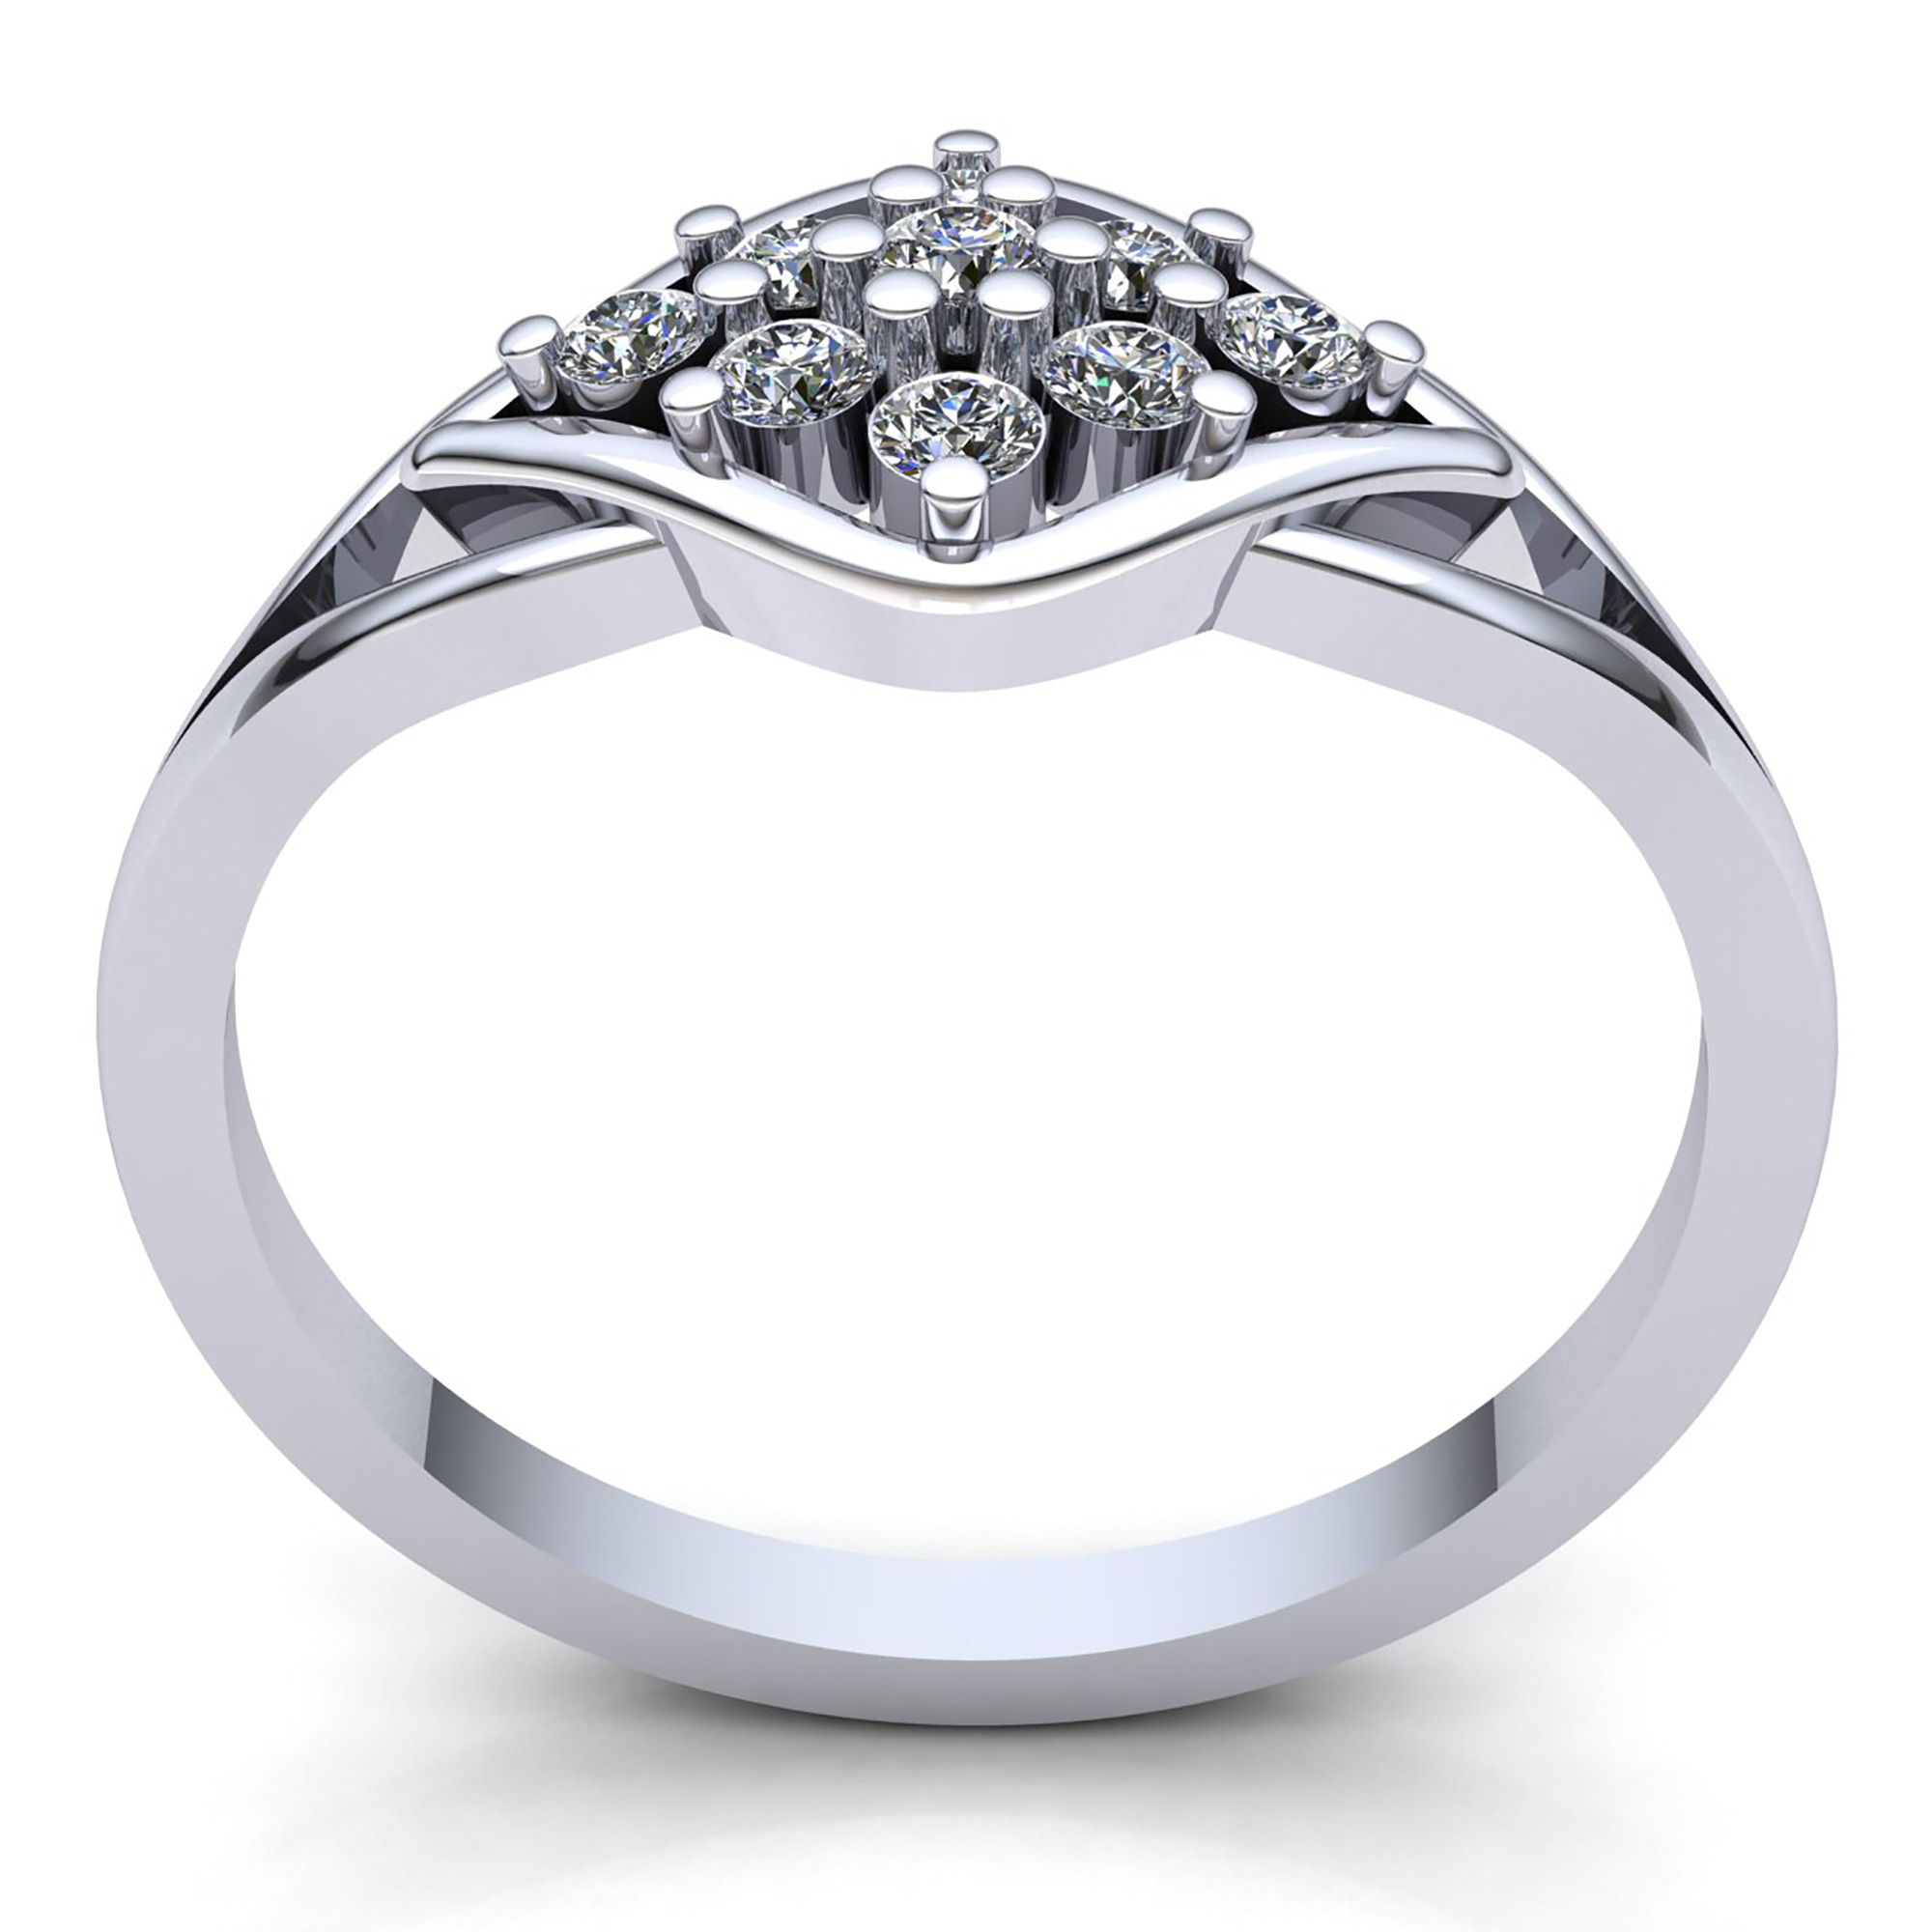 Halo Anniversary Bands: 1carat Round Cut Diamond Ladies Cluster Halo Promise